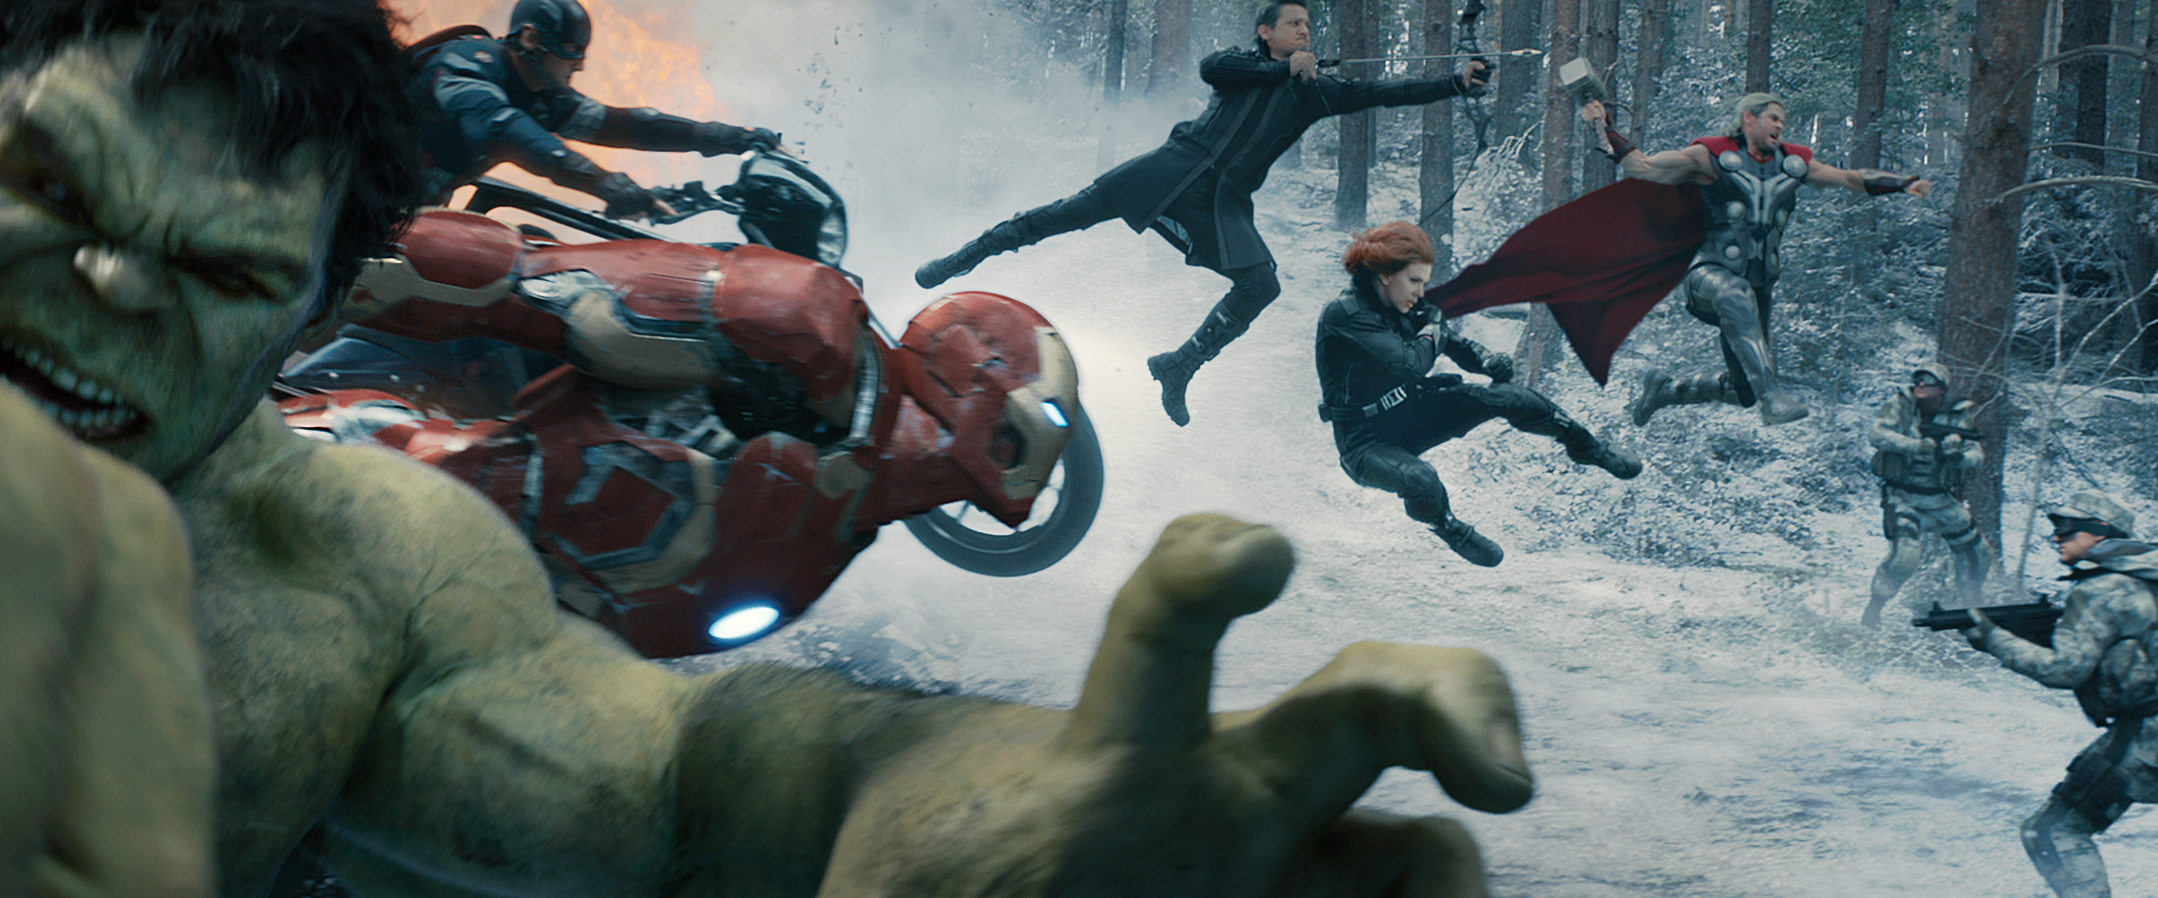 Avengers_Age_of_Ultron_82.png